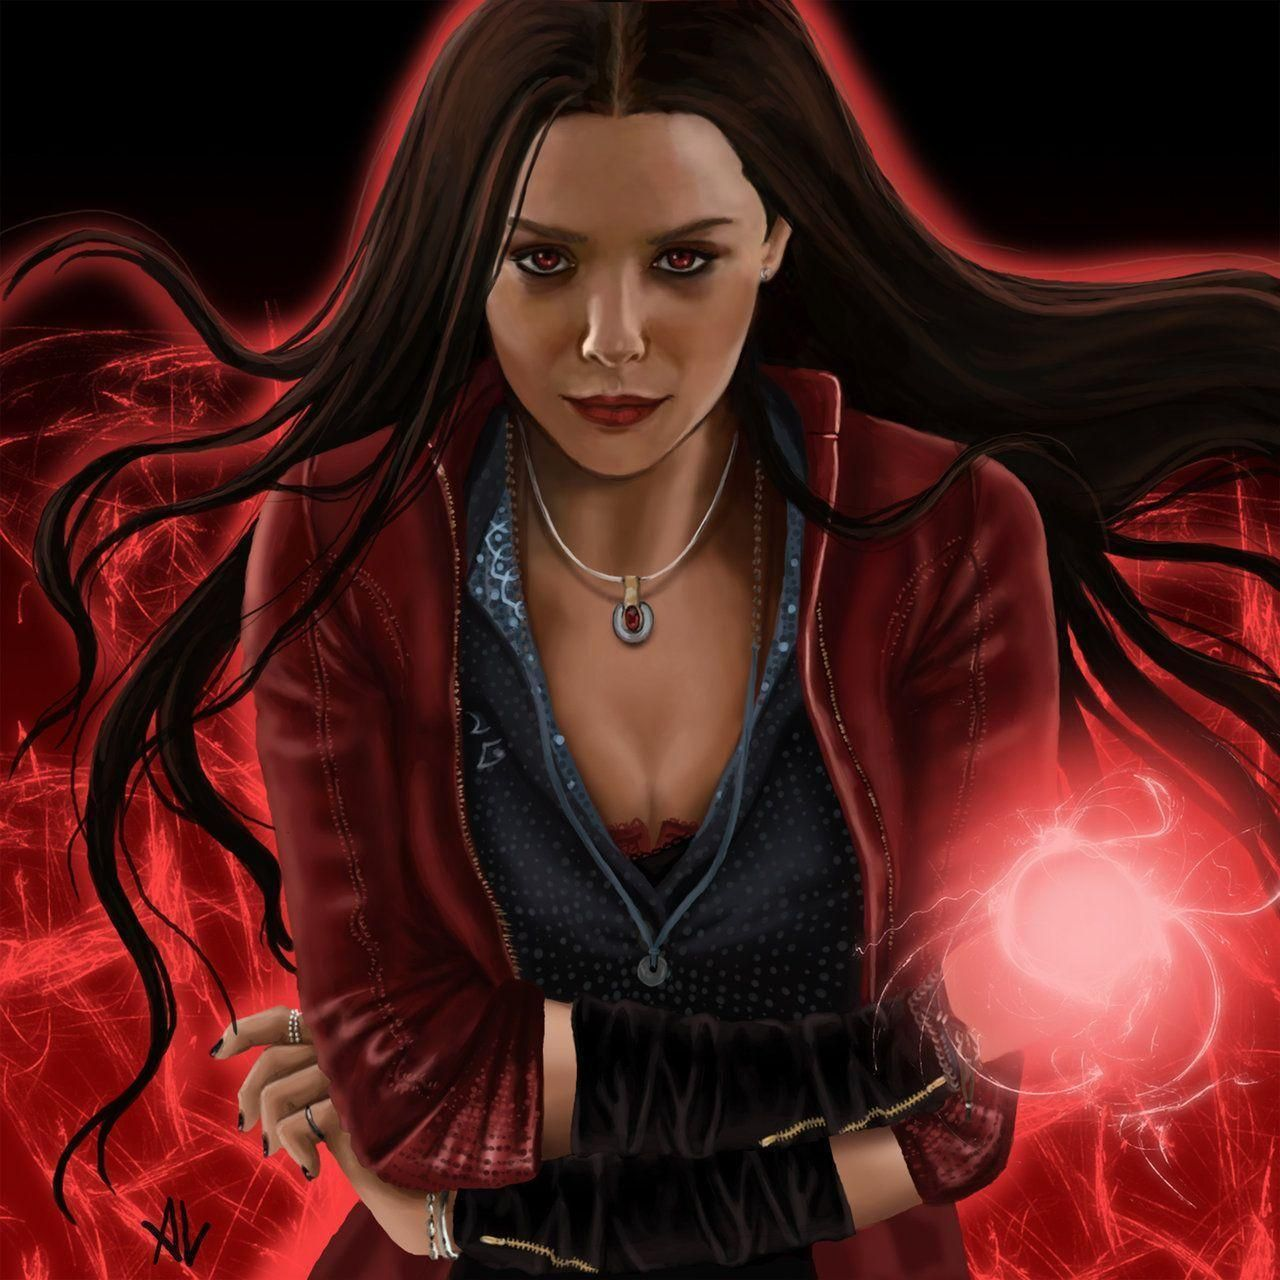 Scarlet Witch Wallpapers Wallpaper Cave Scarlet Witch Avengers Scarlet Witch Marvel Scarlet Witch